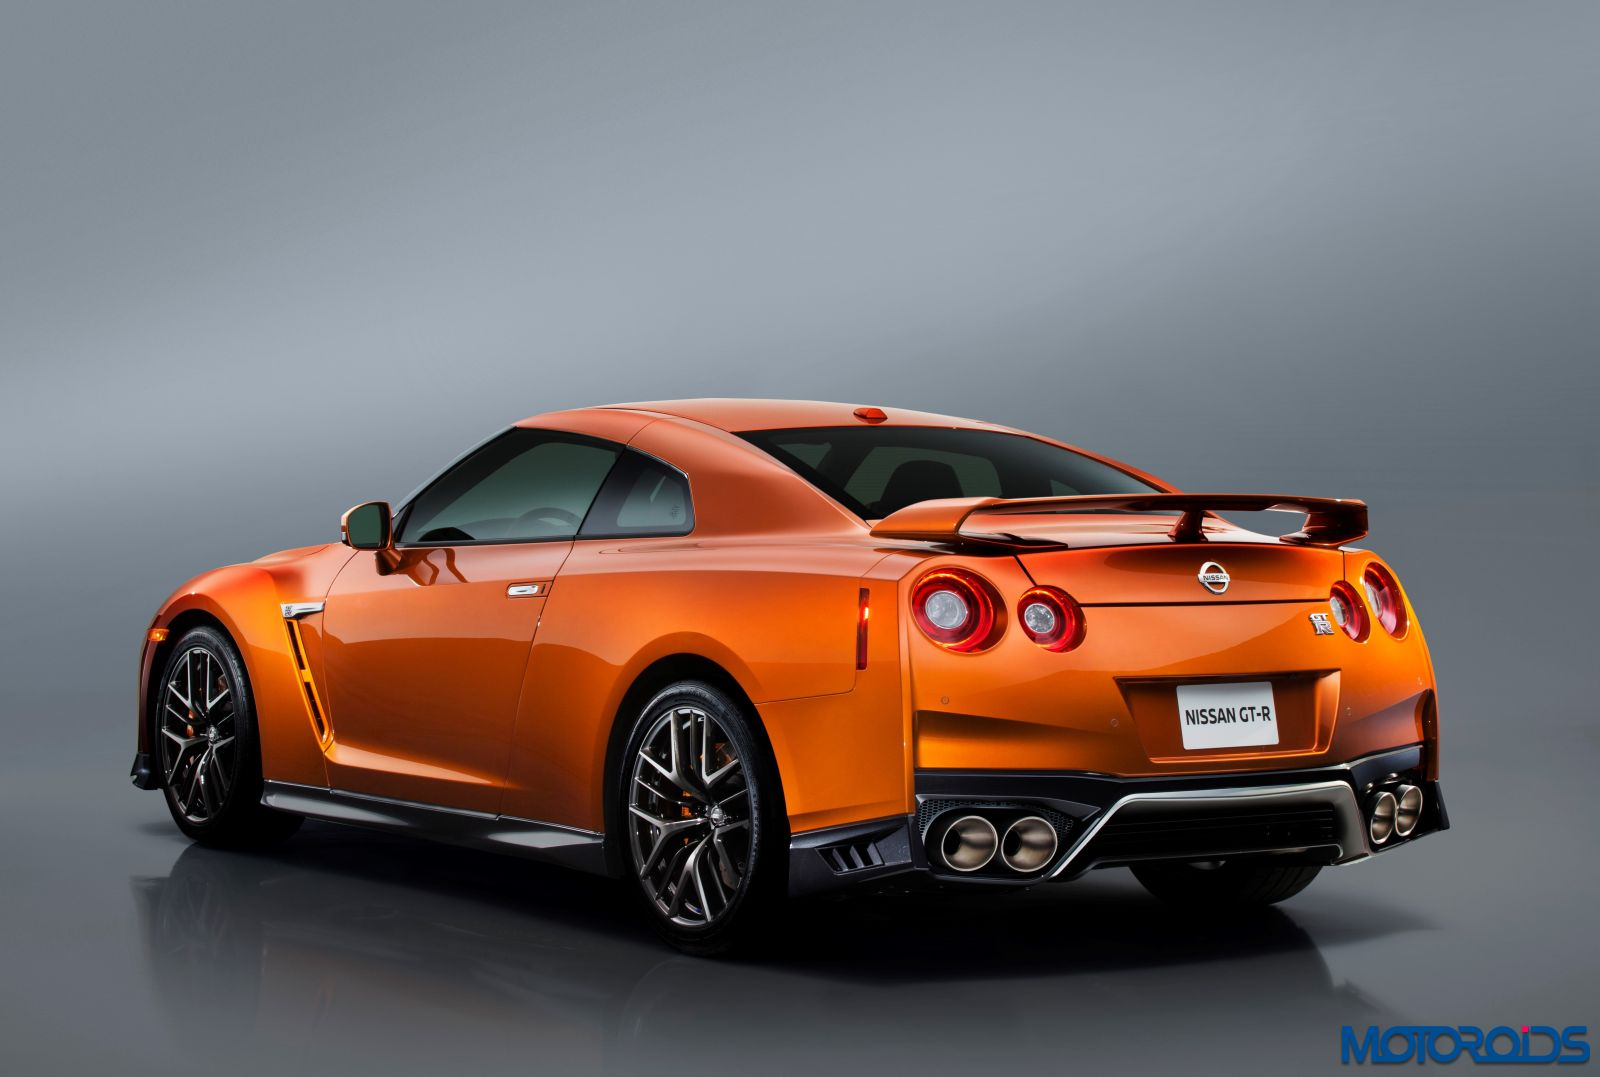 New 2017 Nissan GT-R - Exterior (6)